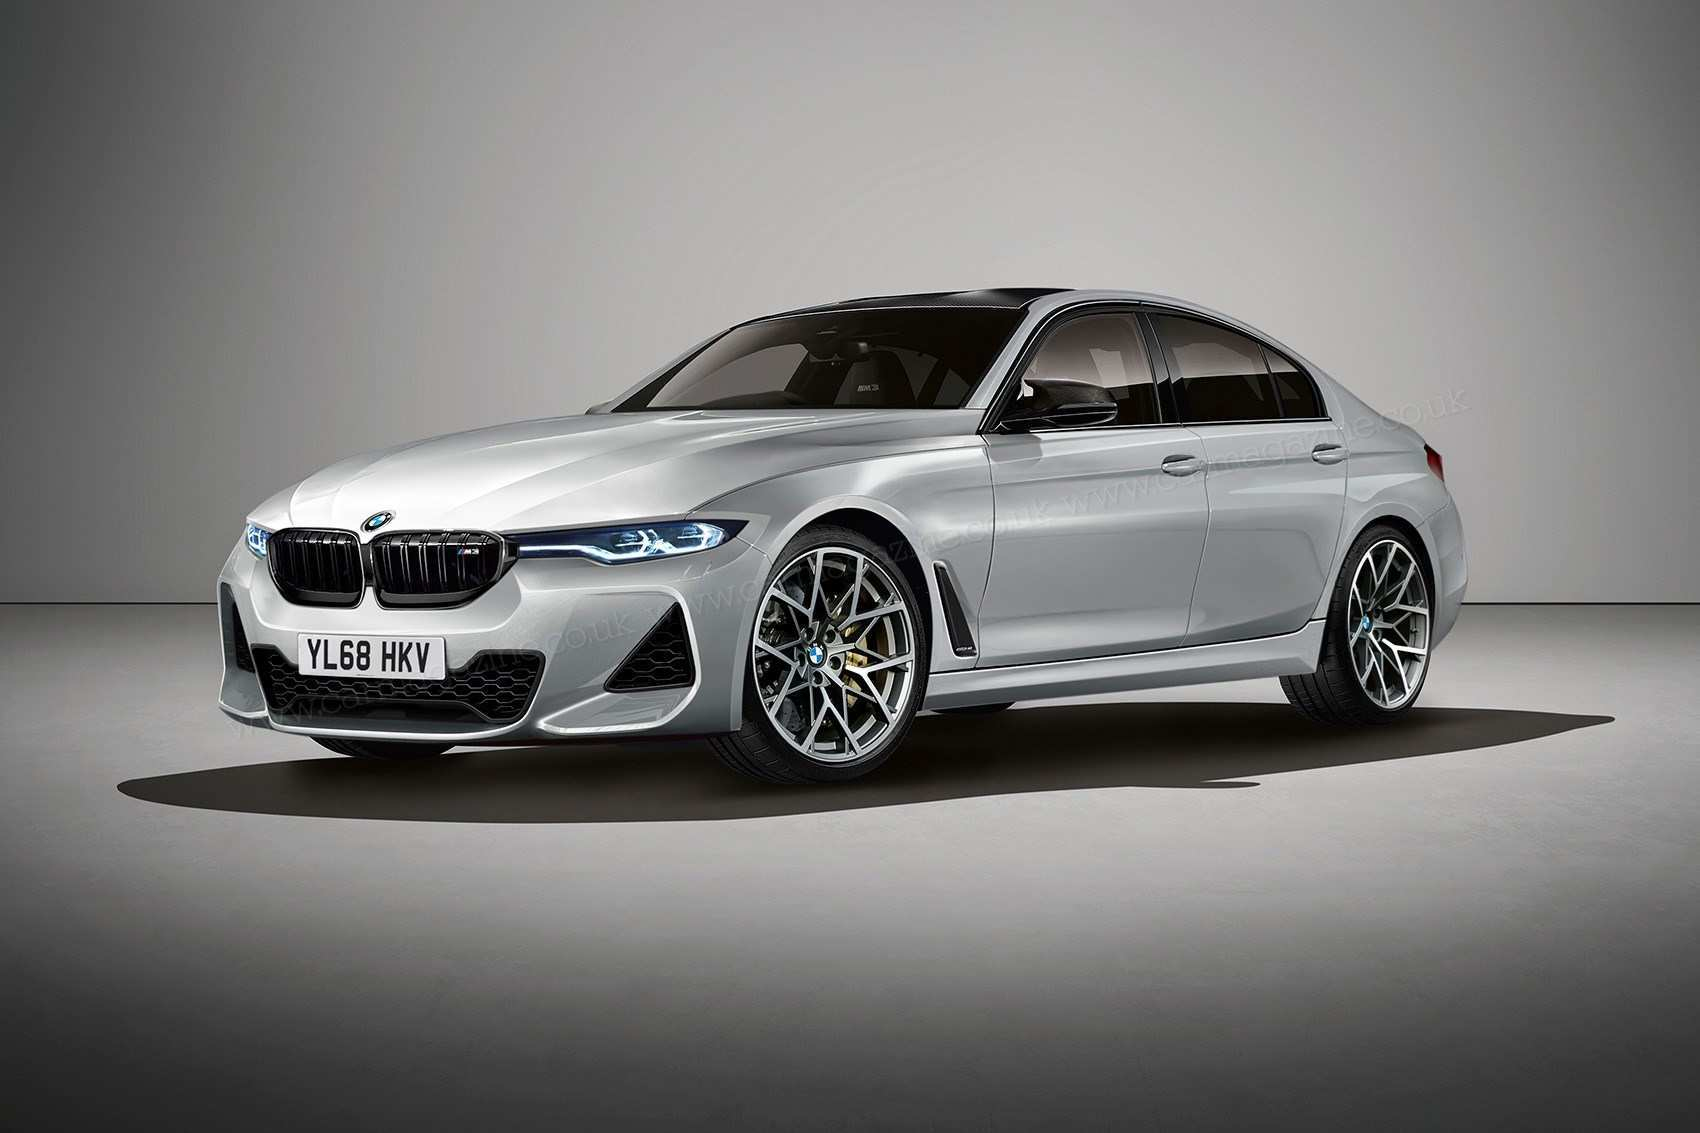 67 All New 2020 BMW M4 Pictures by 2020 BMW M4